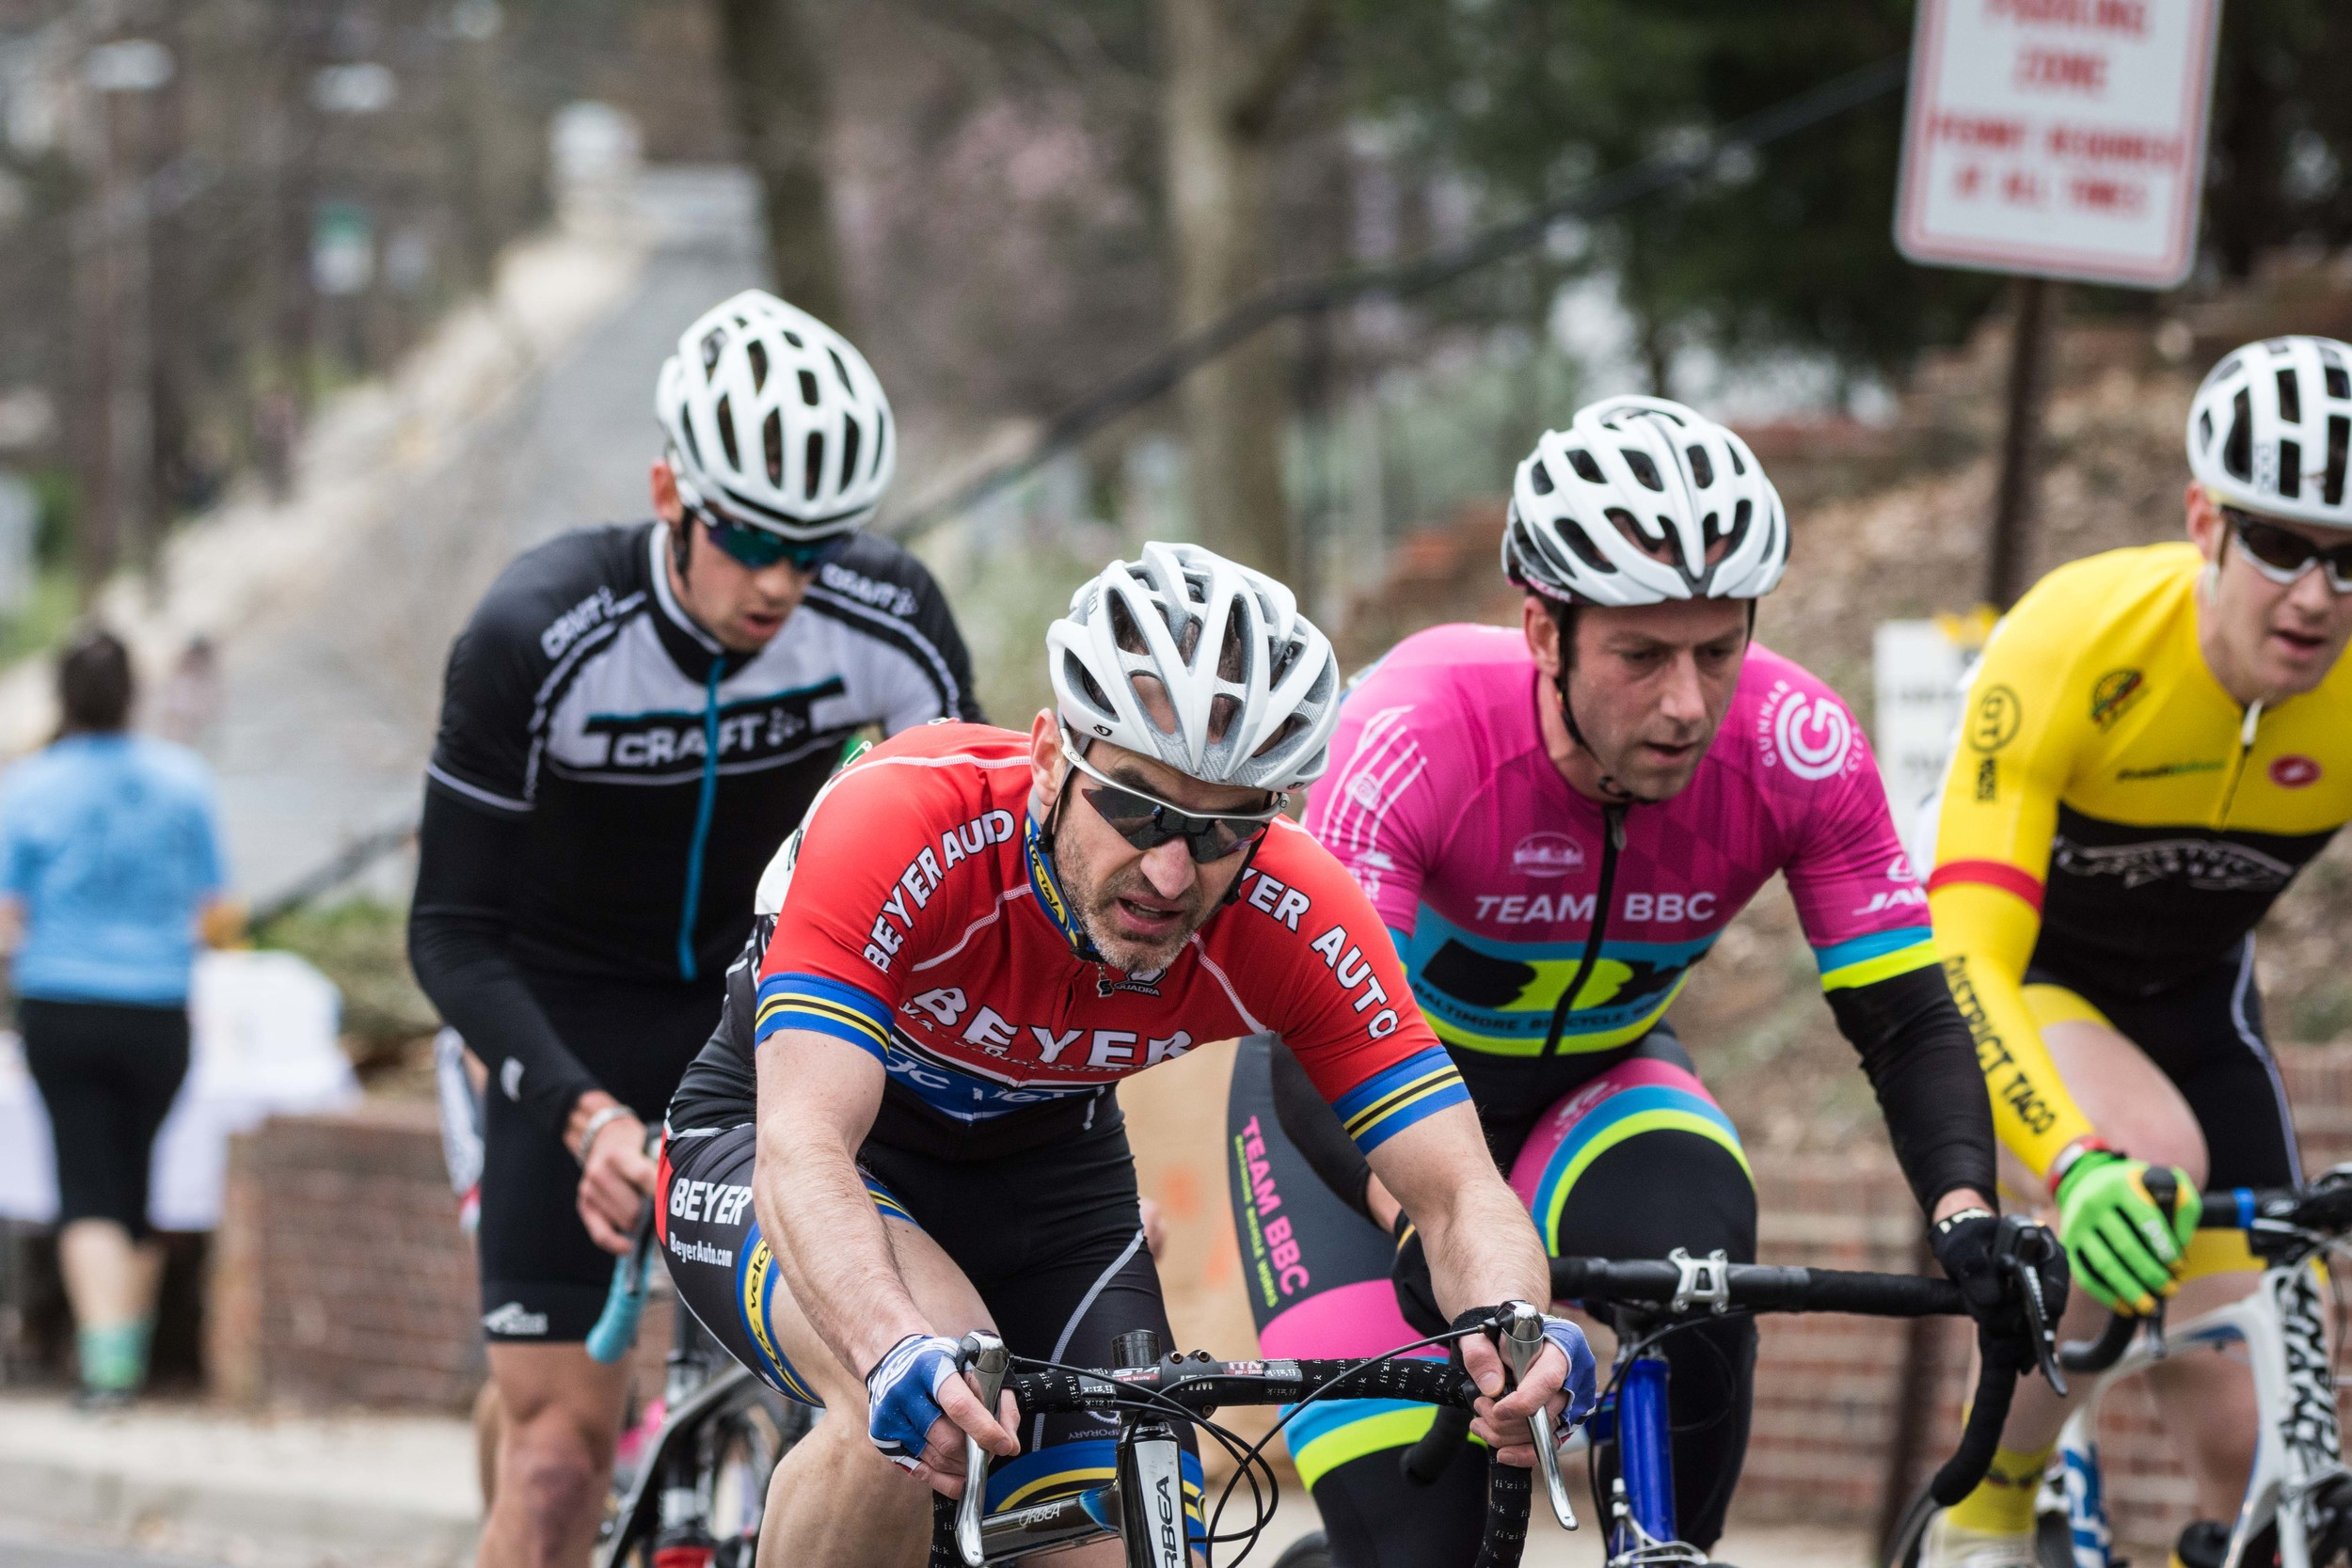 20160312111524 Route One Rampage Criterium 0806.jpg